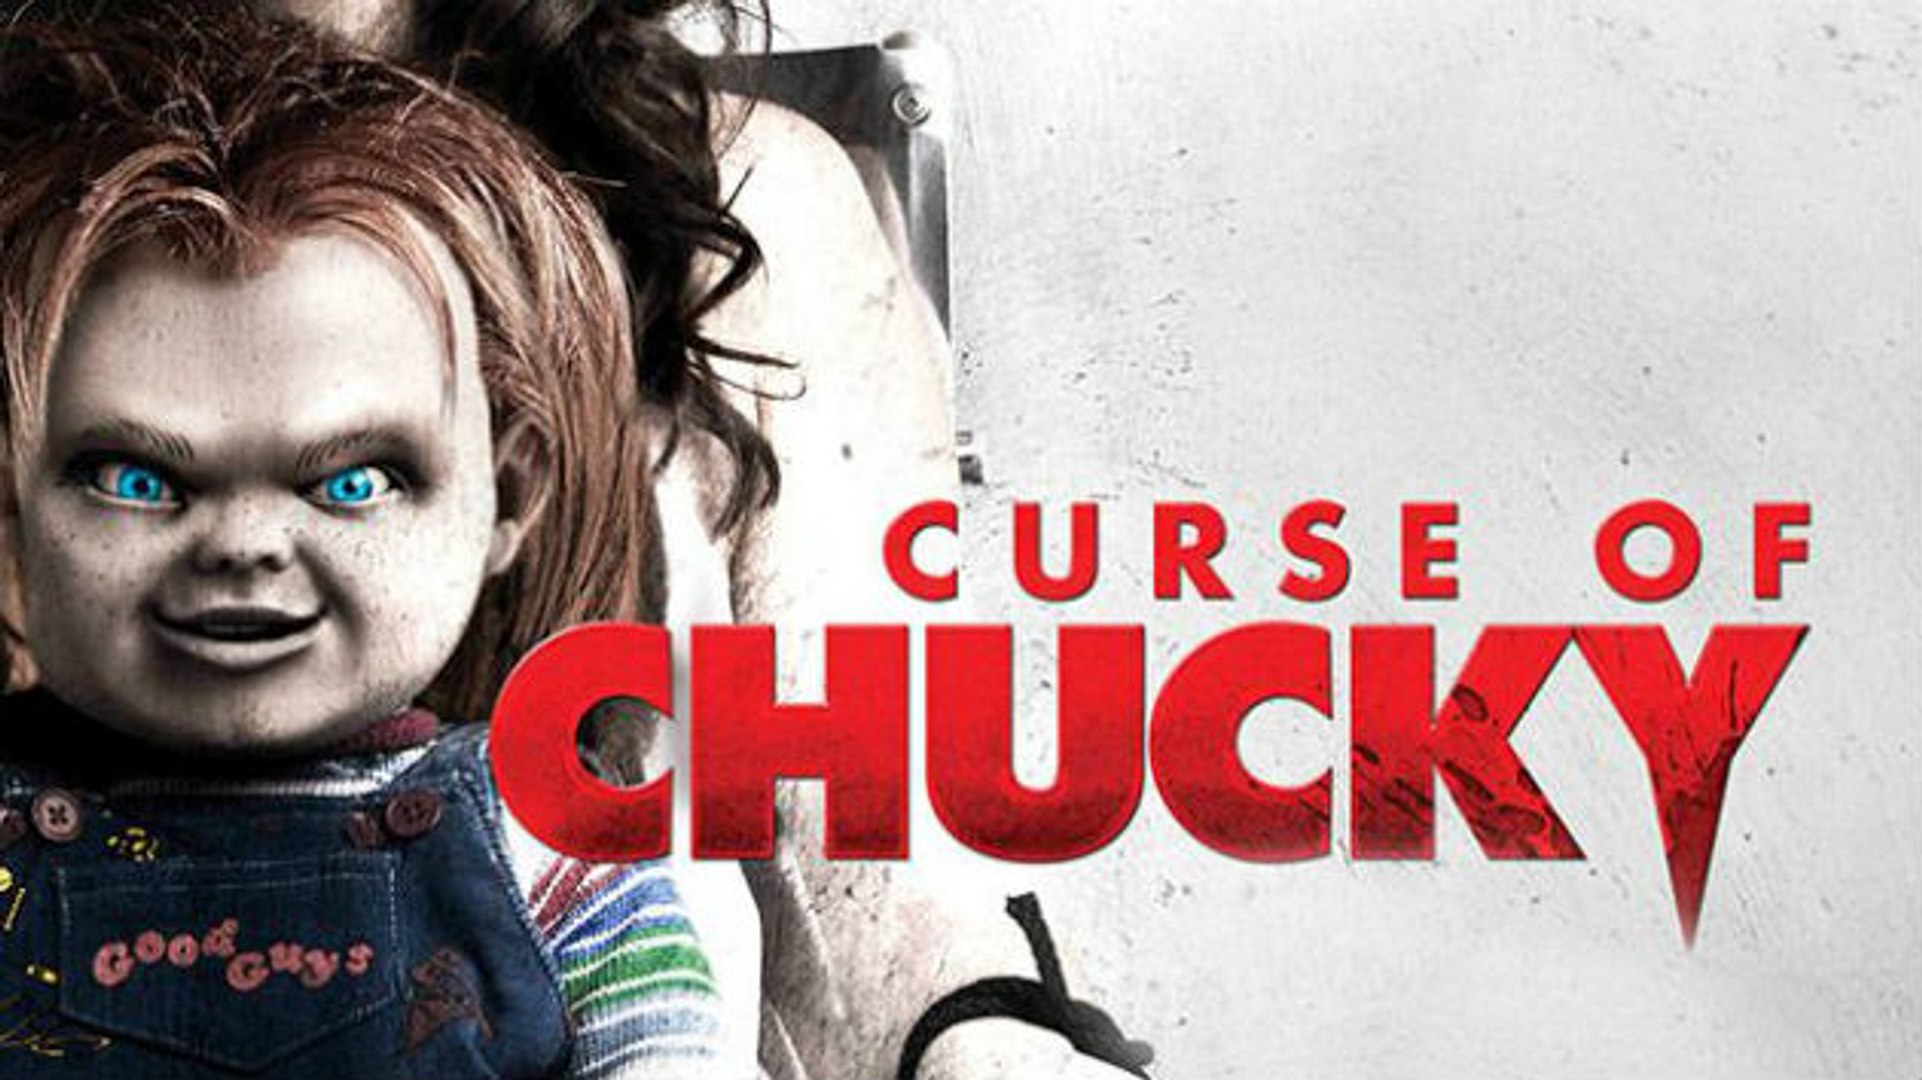 Curse Of Chucky 2013 Slasher Horror Straight To Video Film Official Part 1 Video Dailymotion